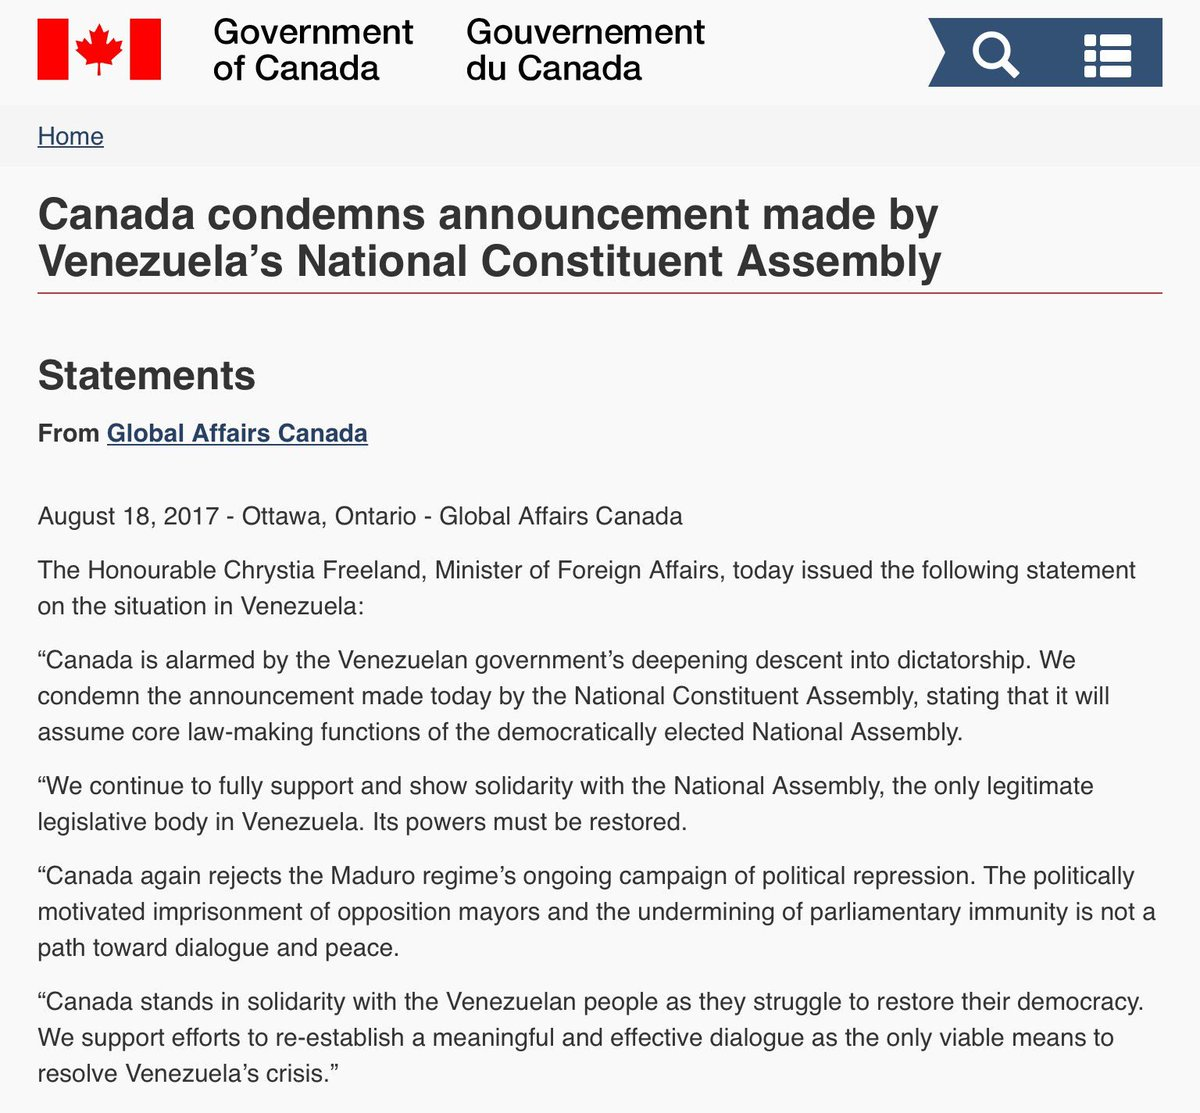 #Canada condemns announcements made by #Venezuela&#39;s National Consituent Assembly #cdnpoli<br>http://pic.twitter.com/u1YR5SKnZe